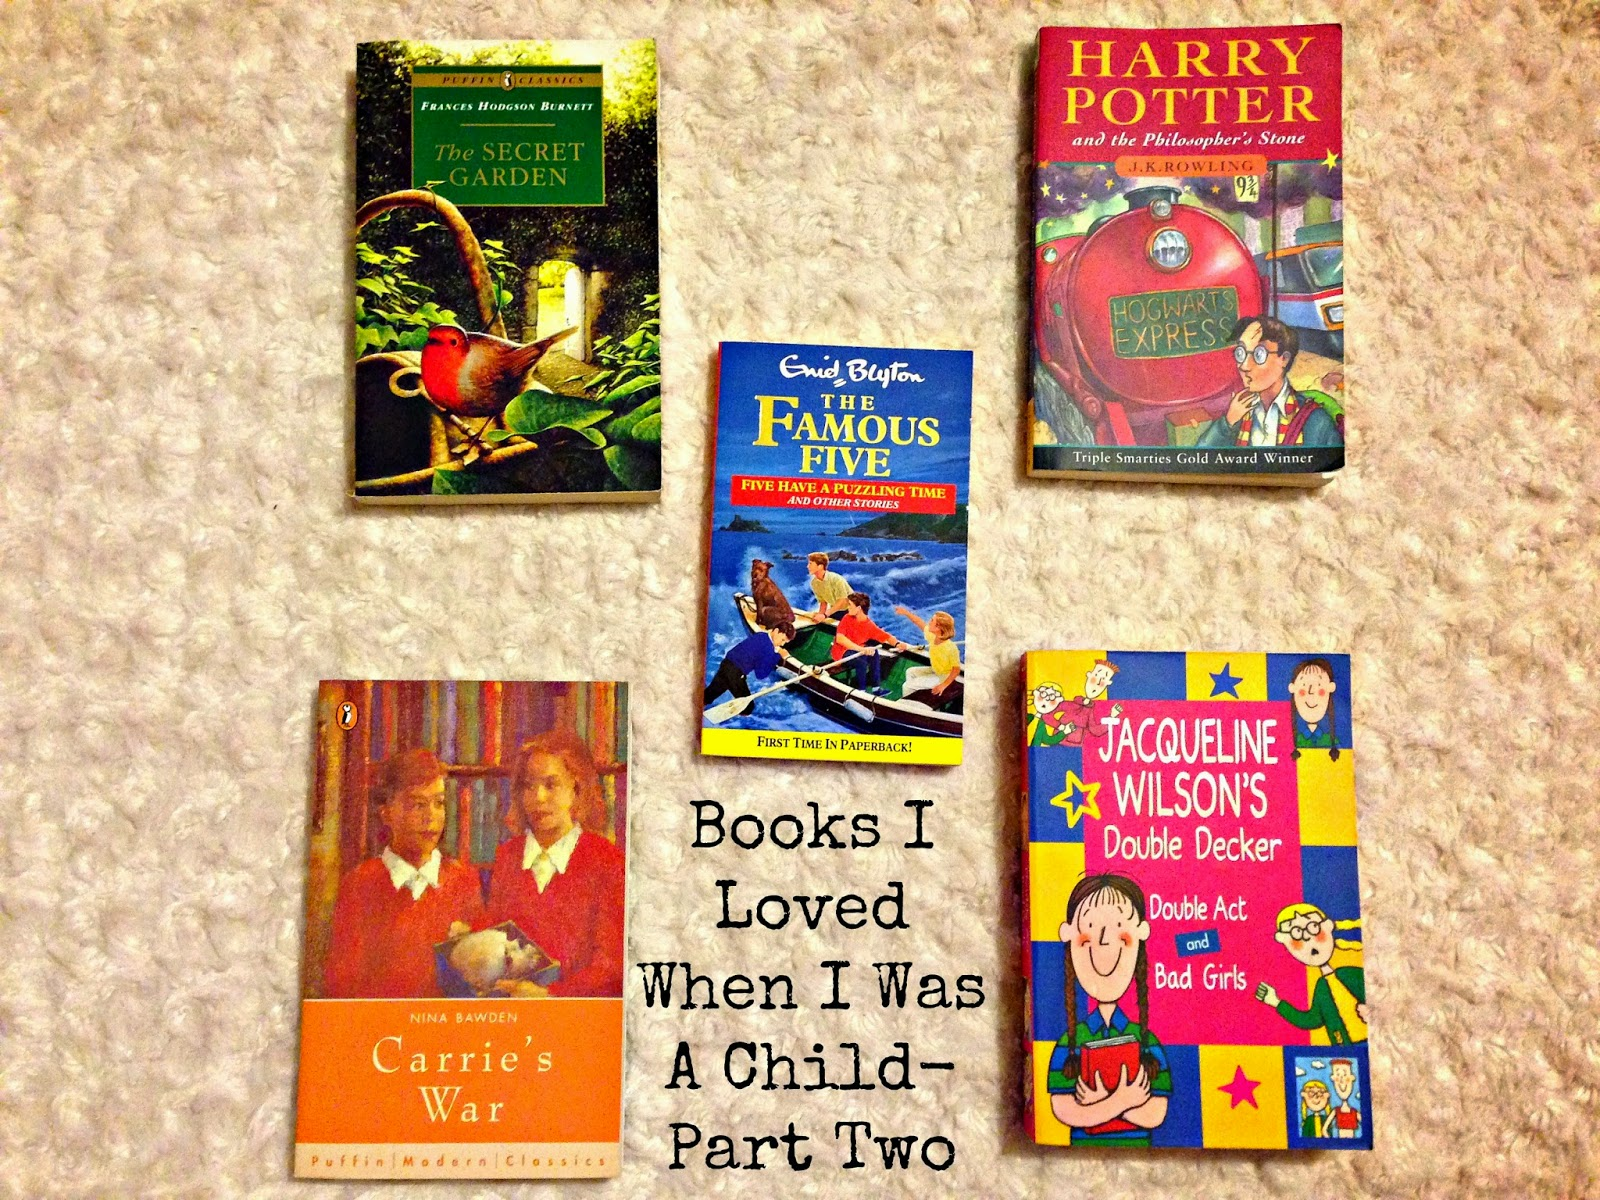 Books I Loved When I Was A Child- Part Two